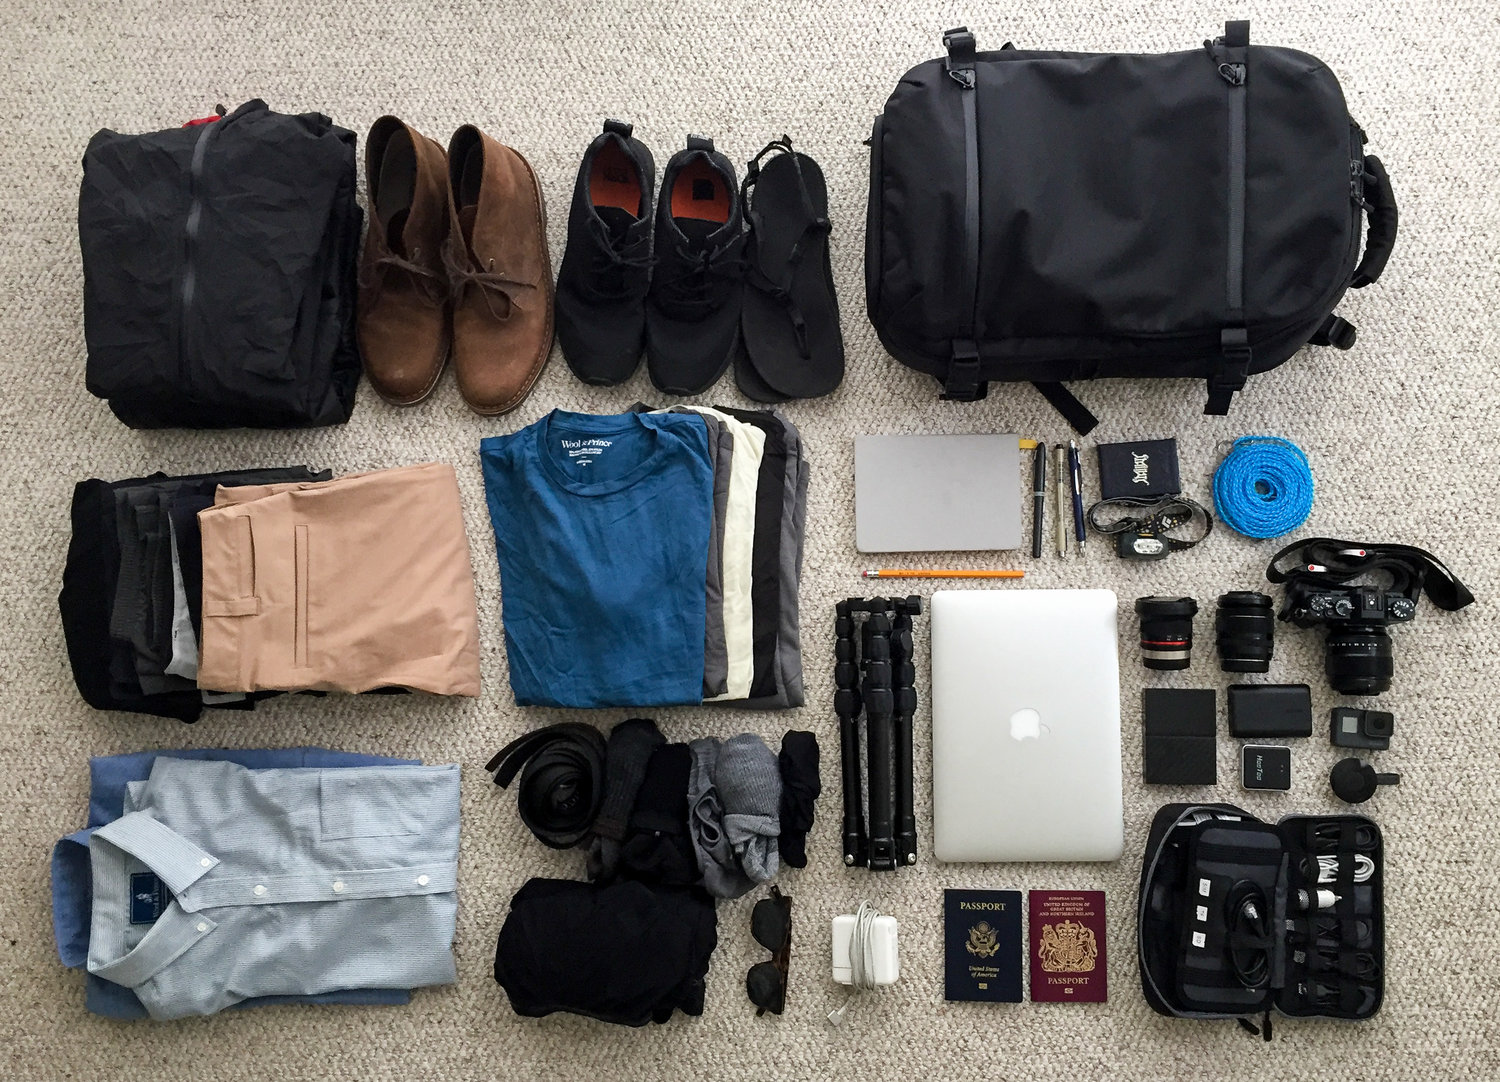 Packing for a round the world trip: Shane's Guide - July 12th, 2017